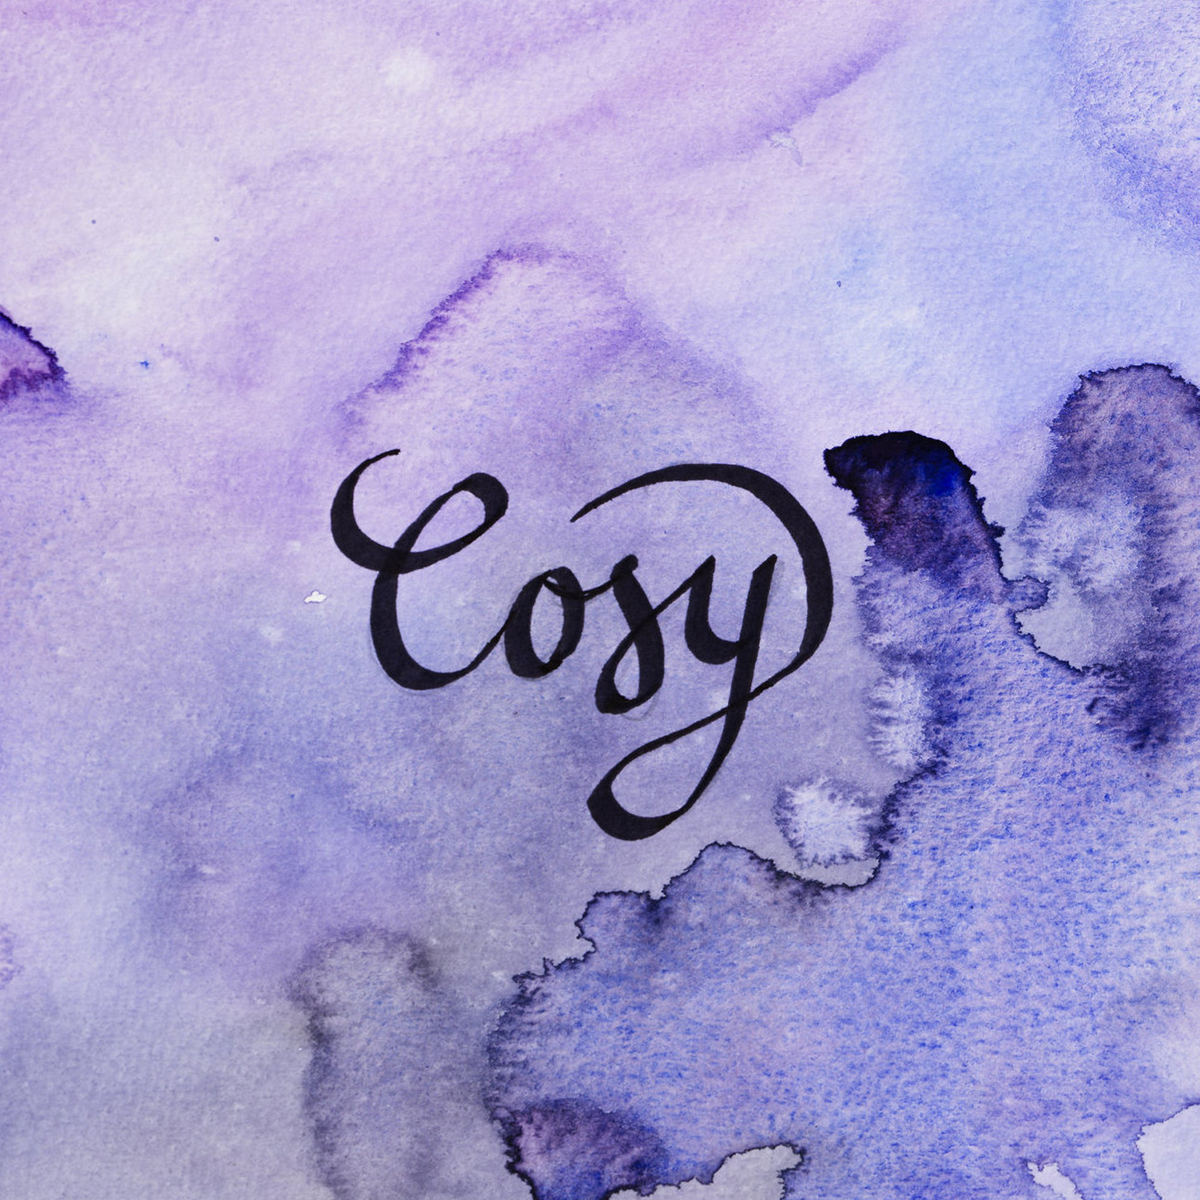 Watercolour & text